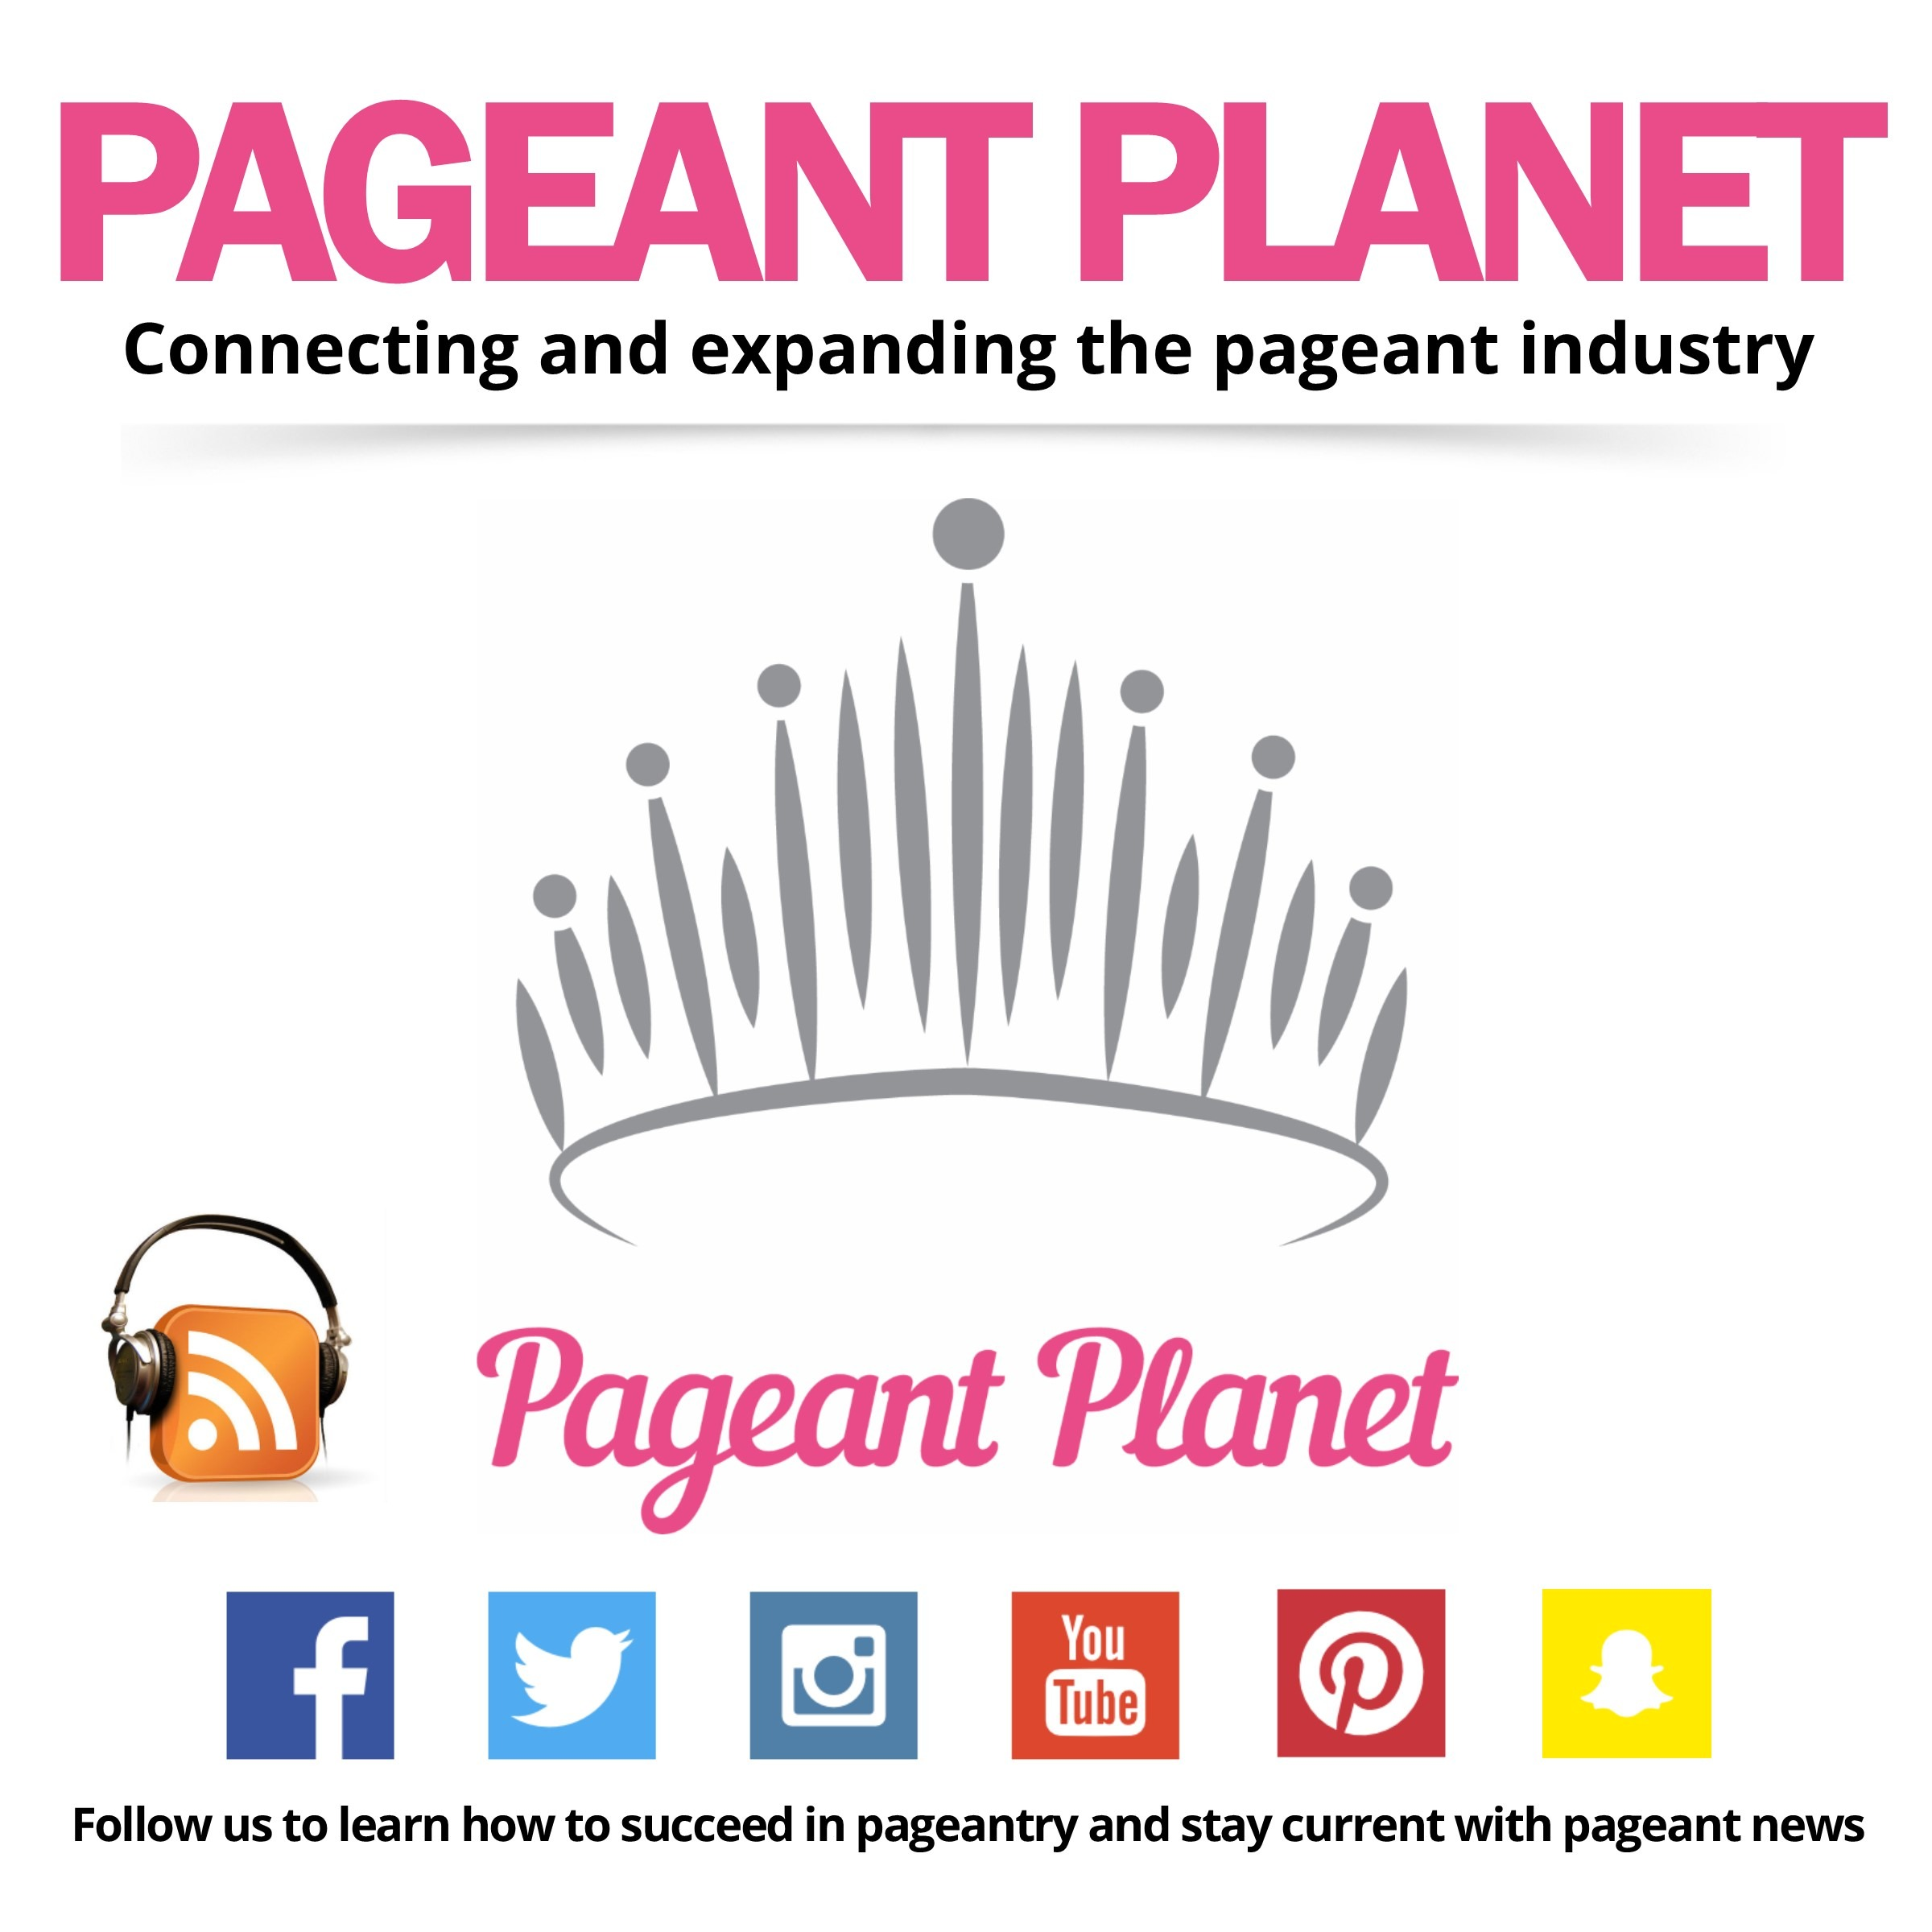 Pageant Planet